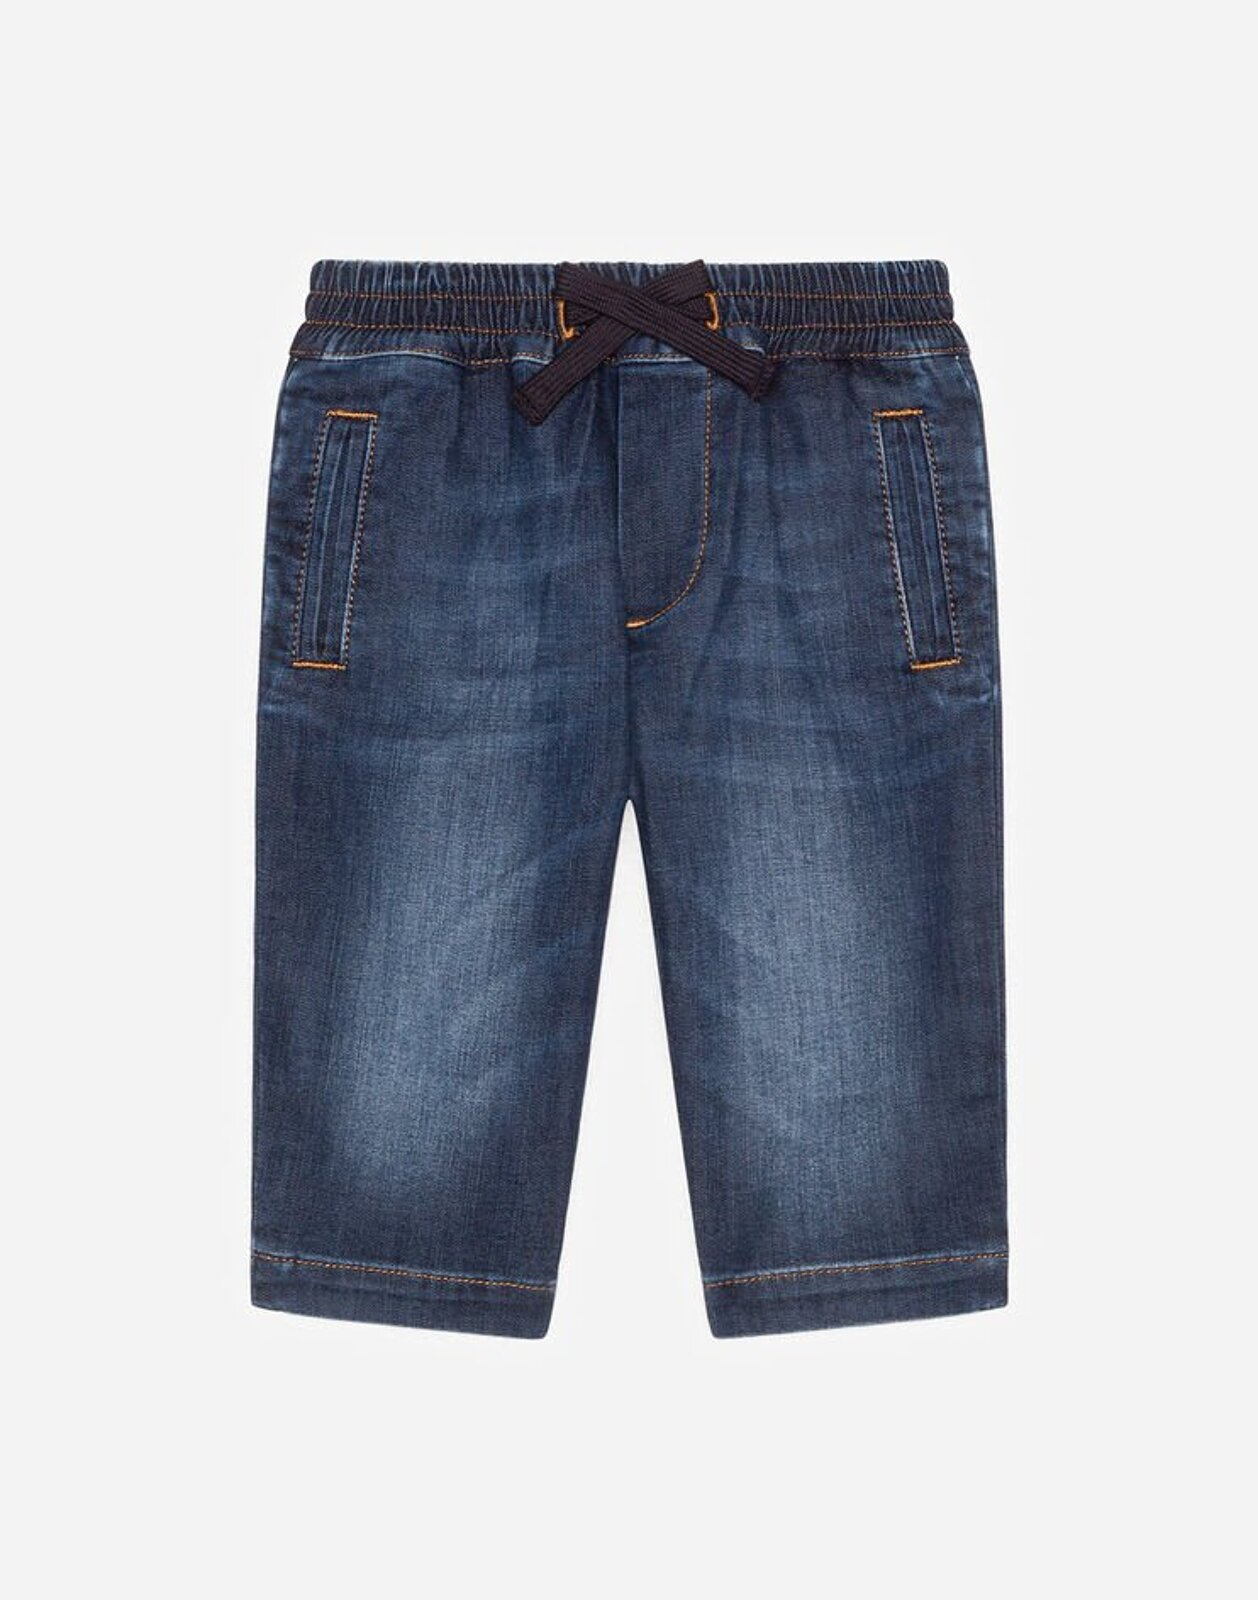 Pantalone In Denim Stretch Blu Scurissimo - Dolce & Gabbana Junior